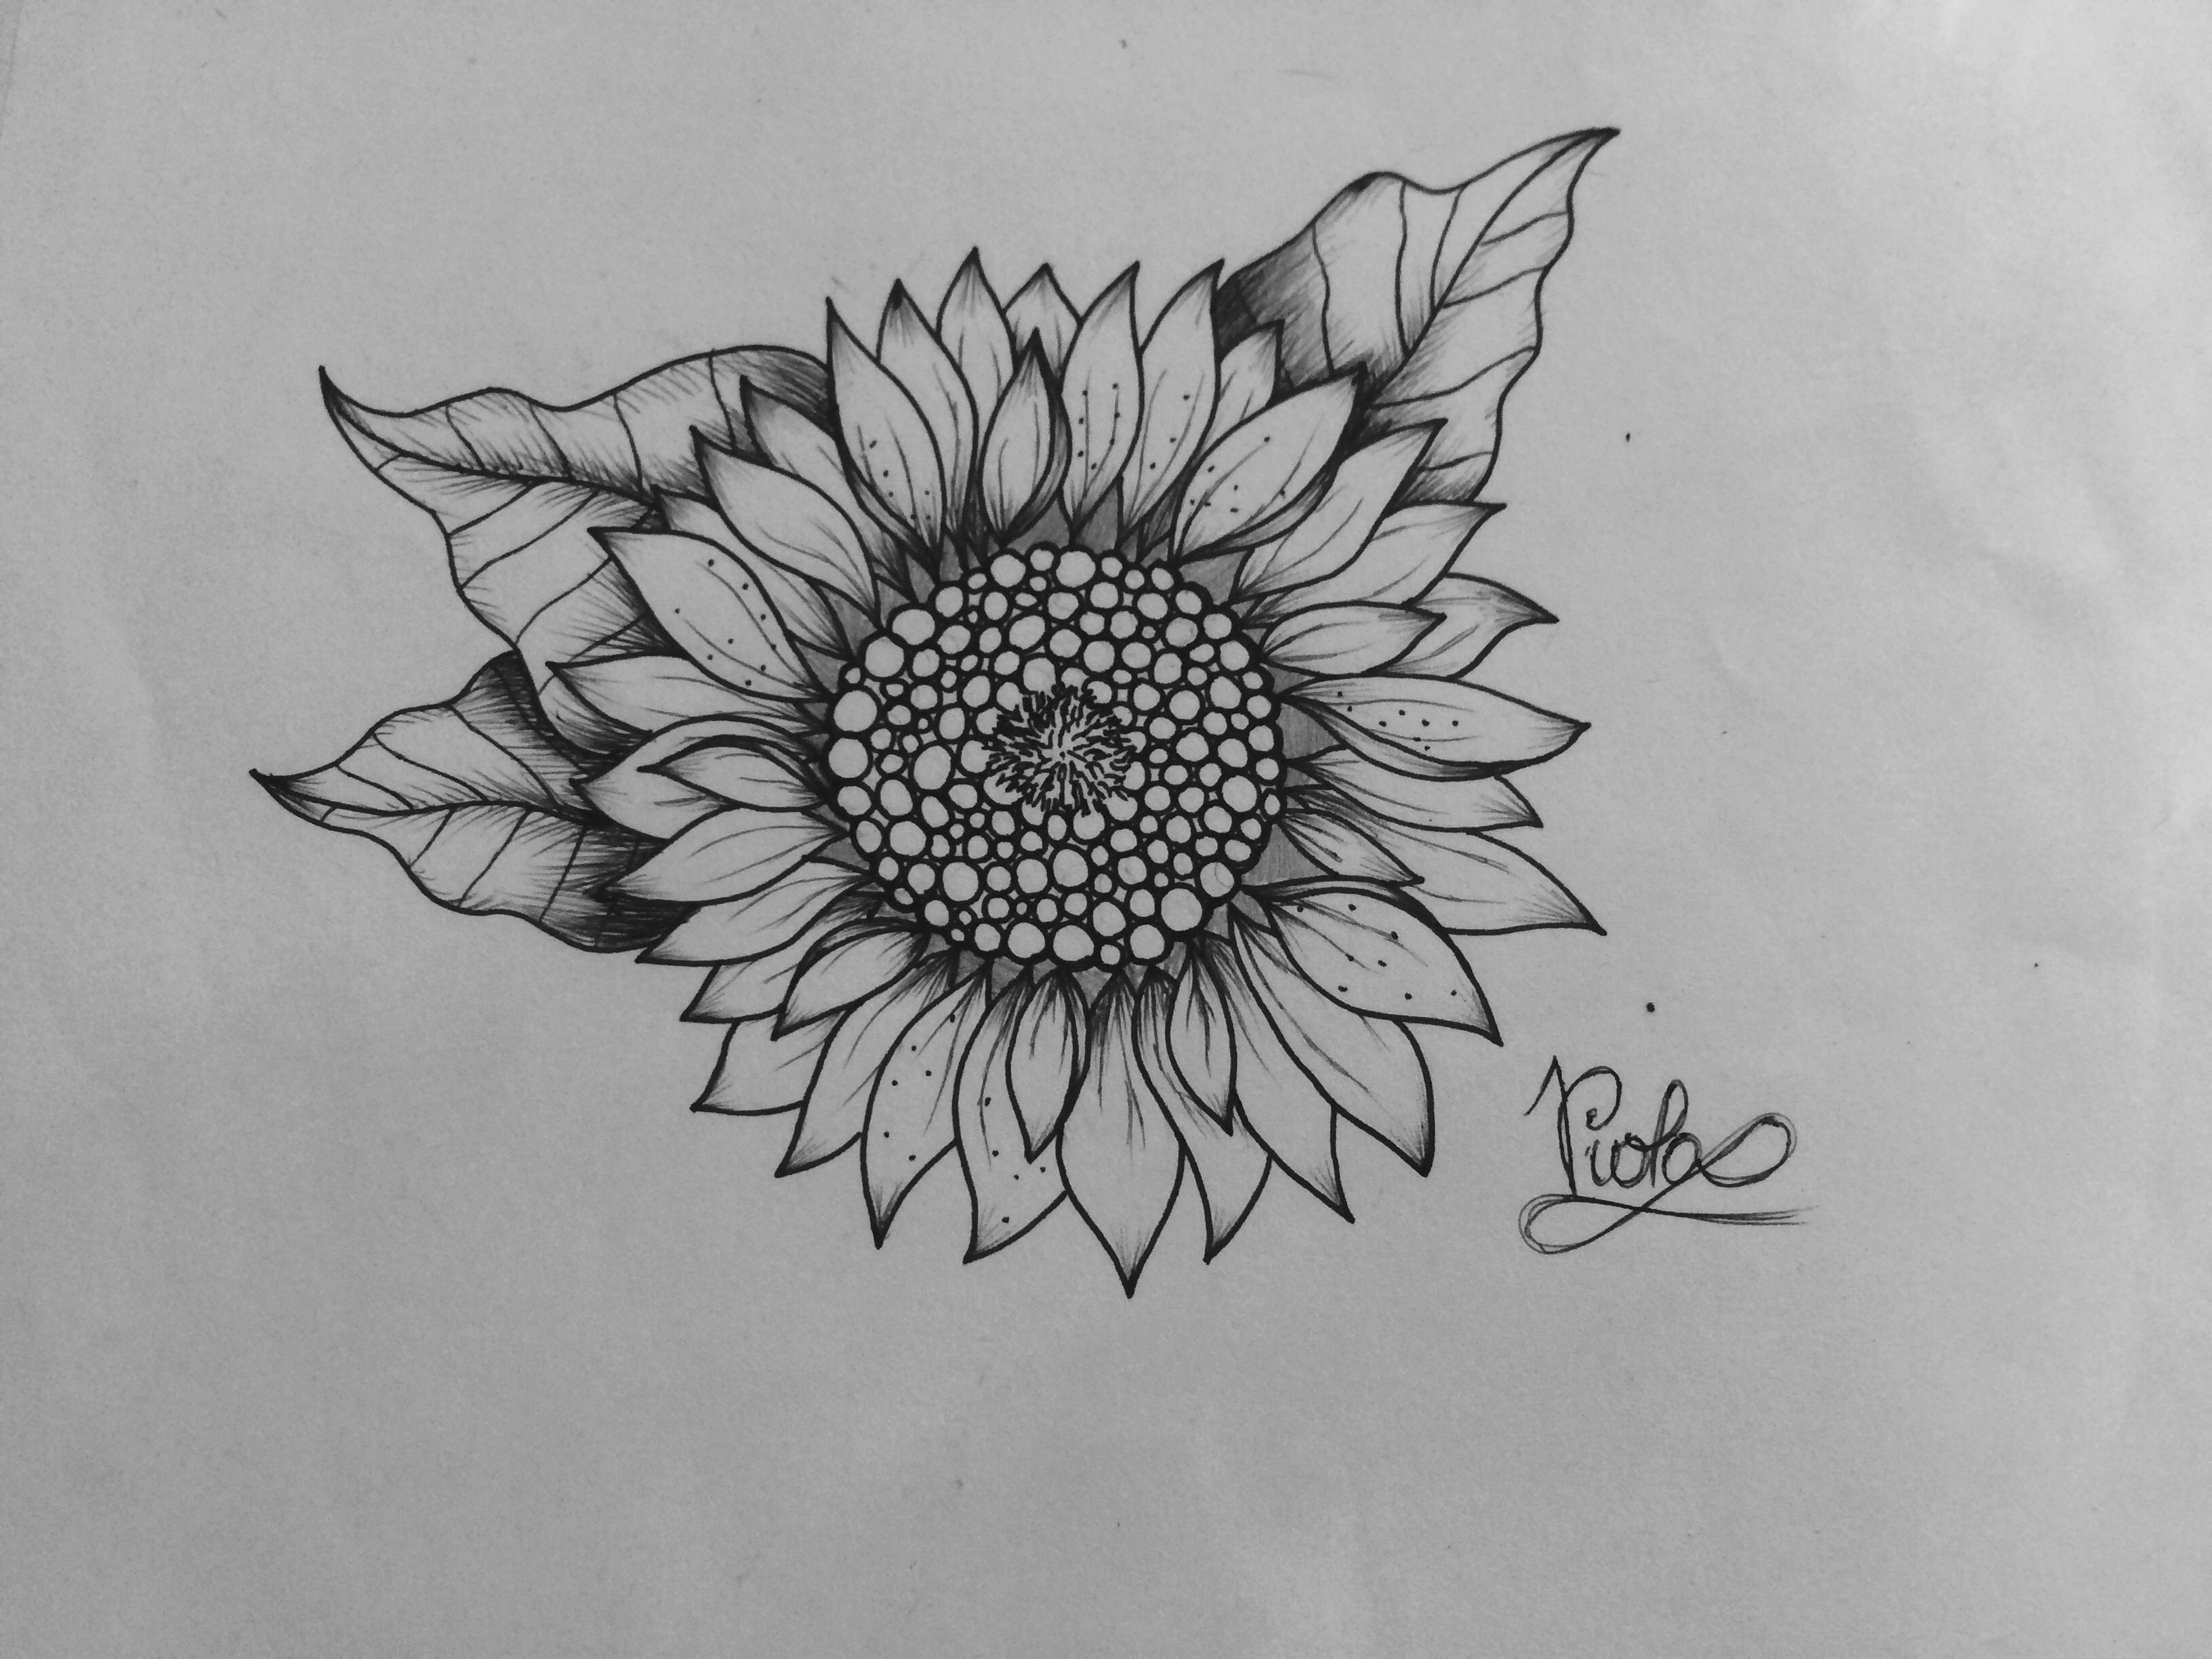 sunflower sketch free 10 sunflower drawings in ai sketch sunflower